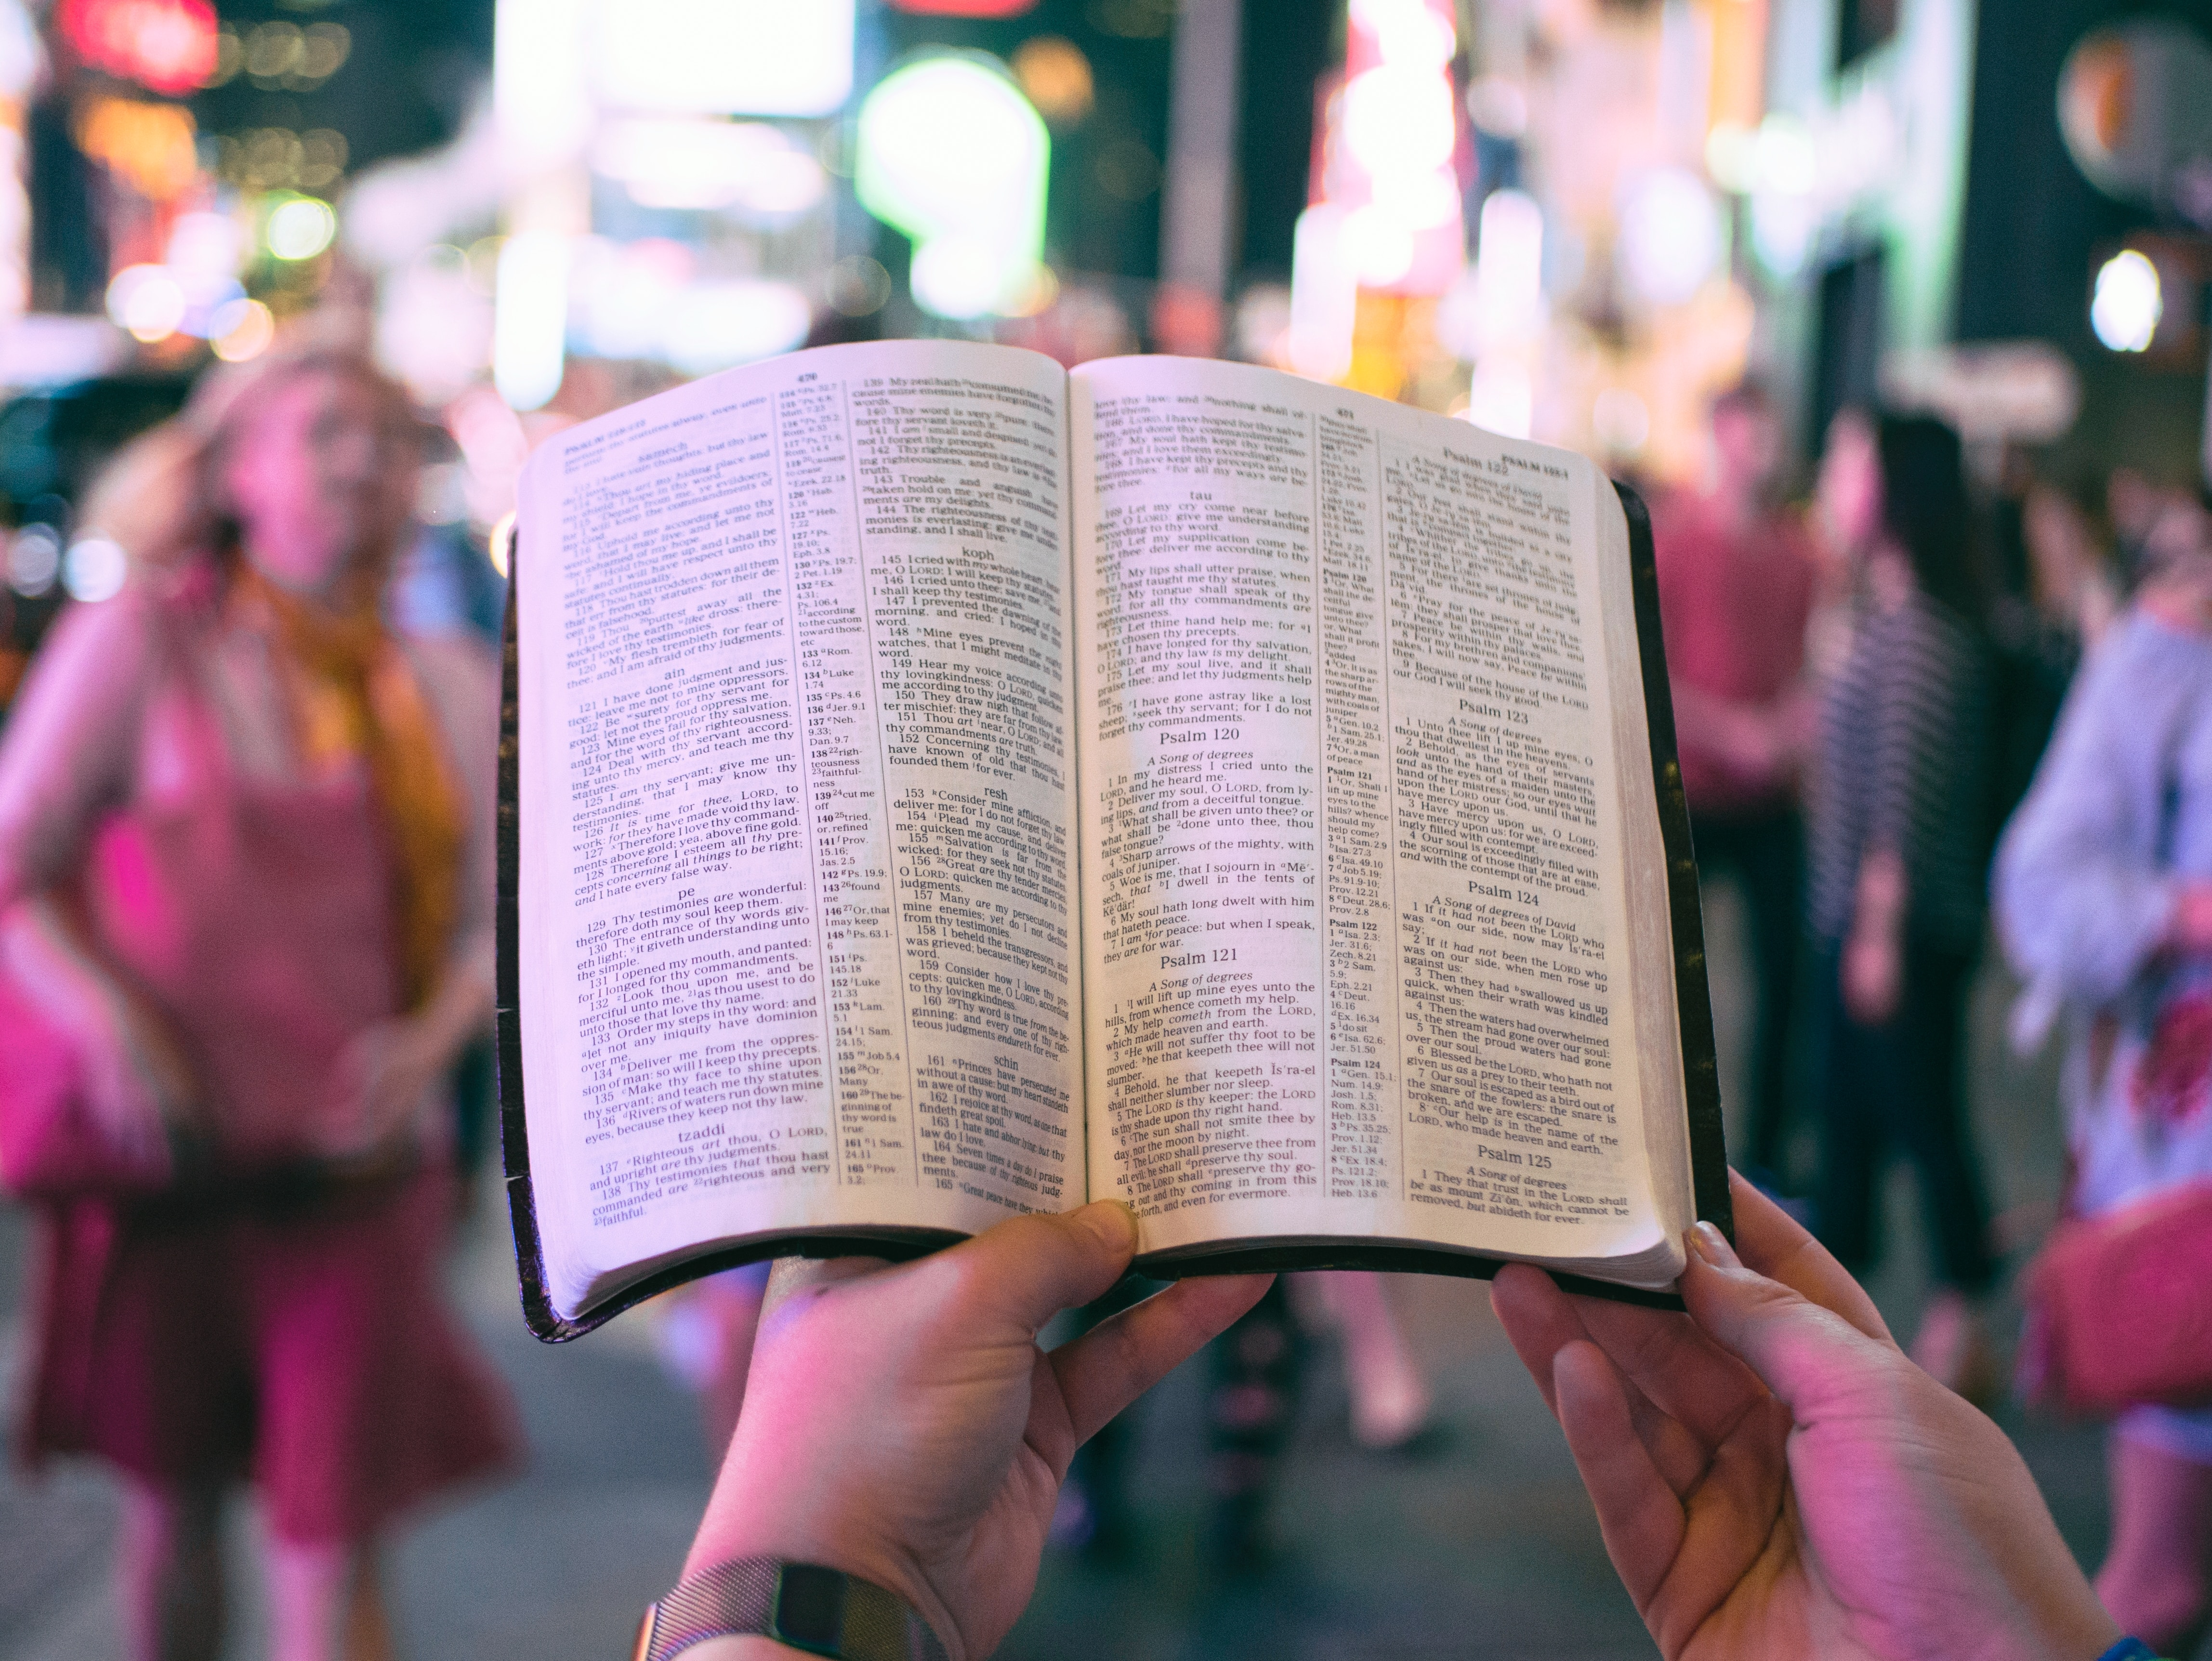 Scriptural literacy in the Bible and now